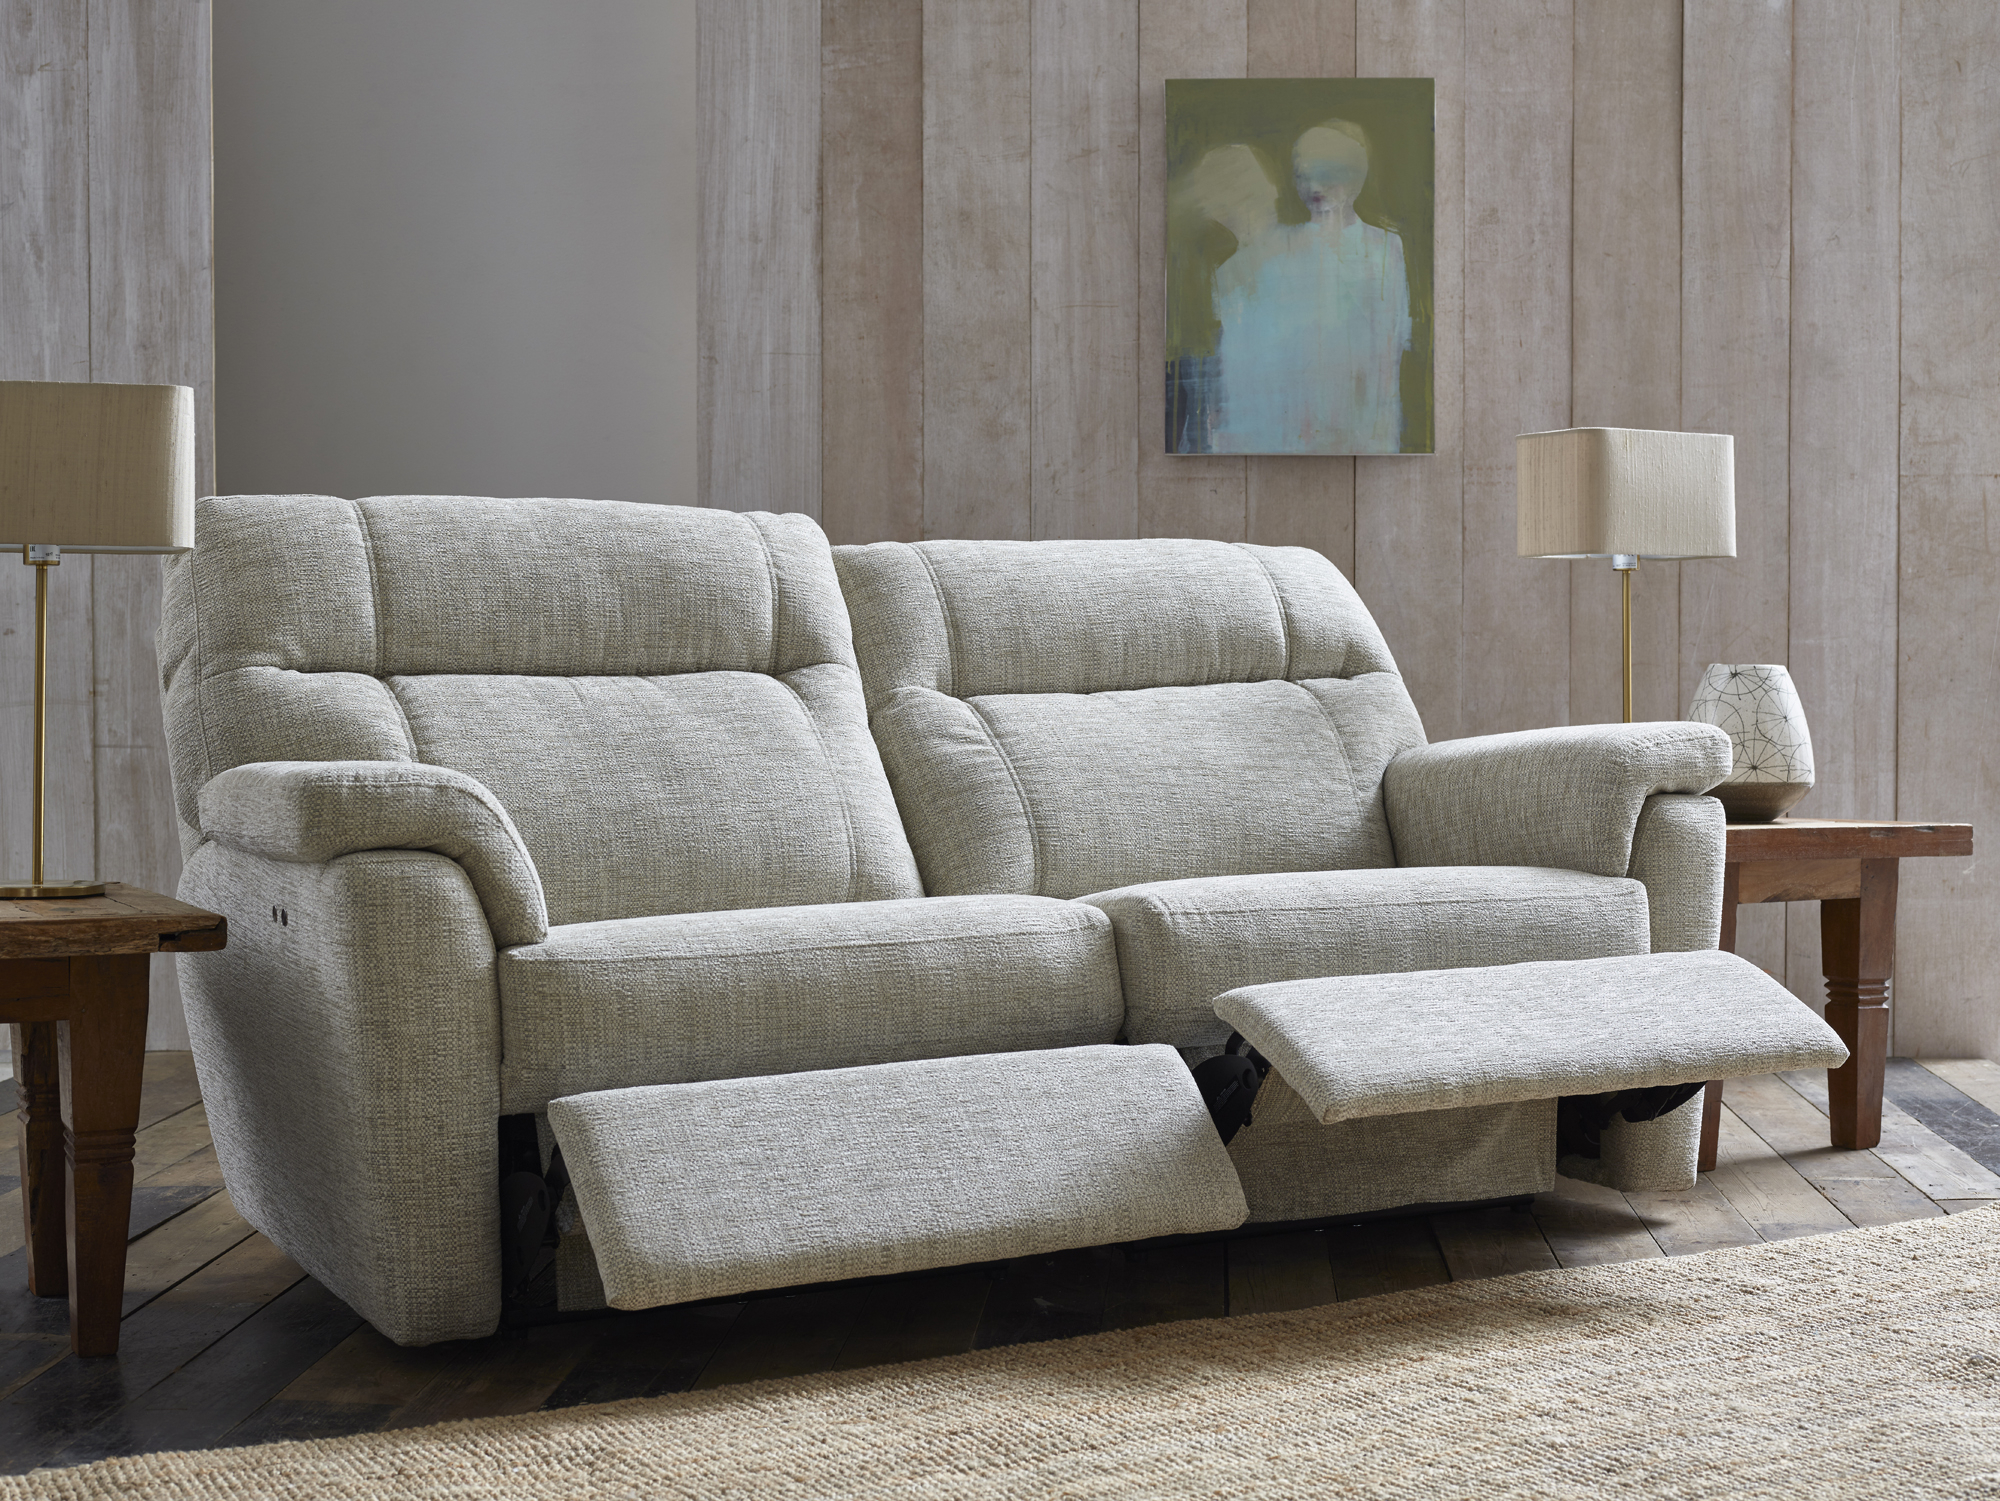 Cameron Fabric Sofa & Chair Collection Intended For Cameron Sofa Chairs (Photo 7 of 20)